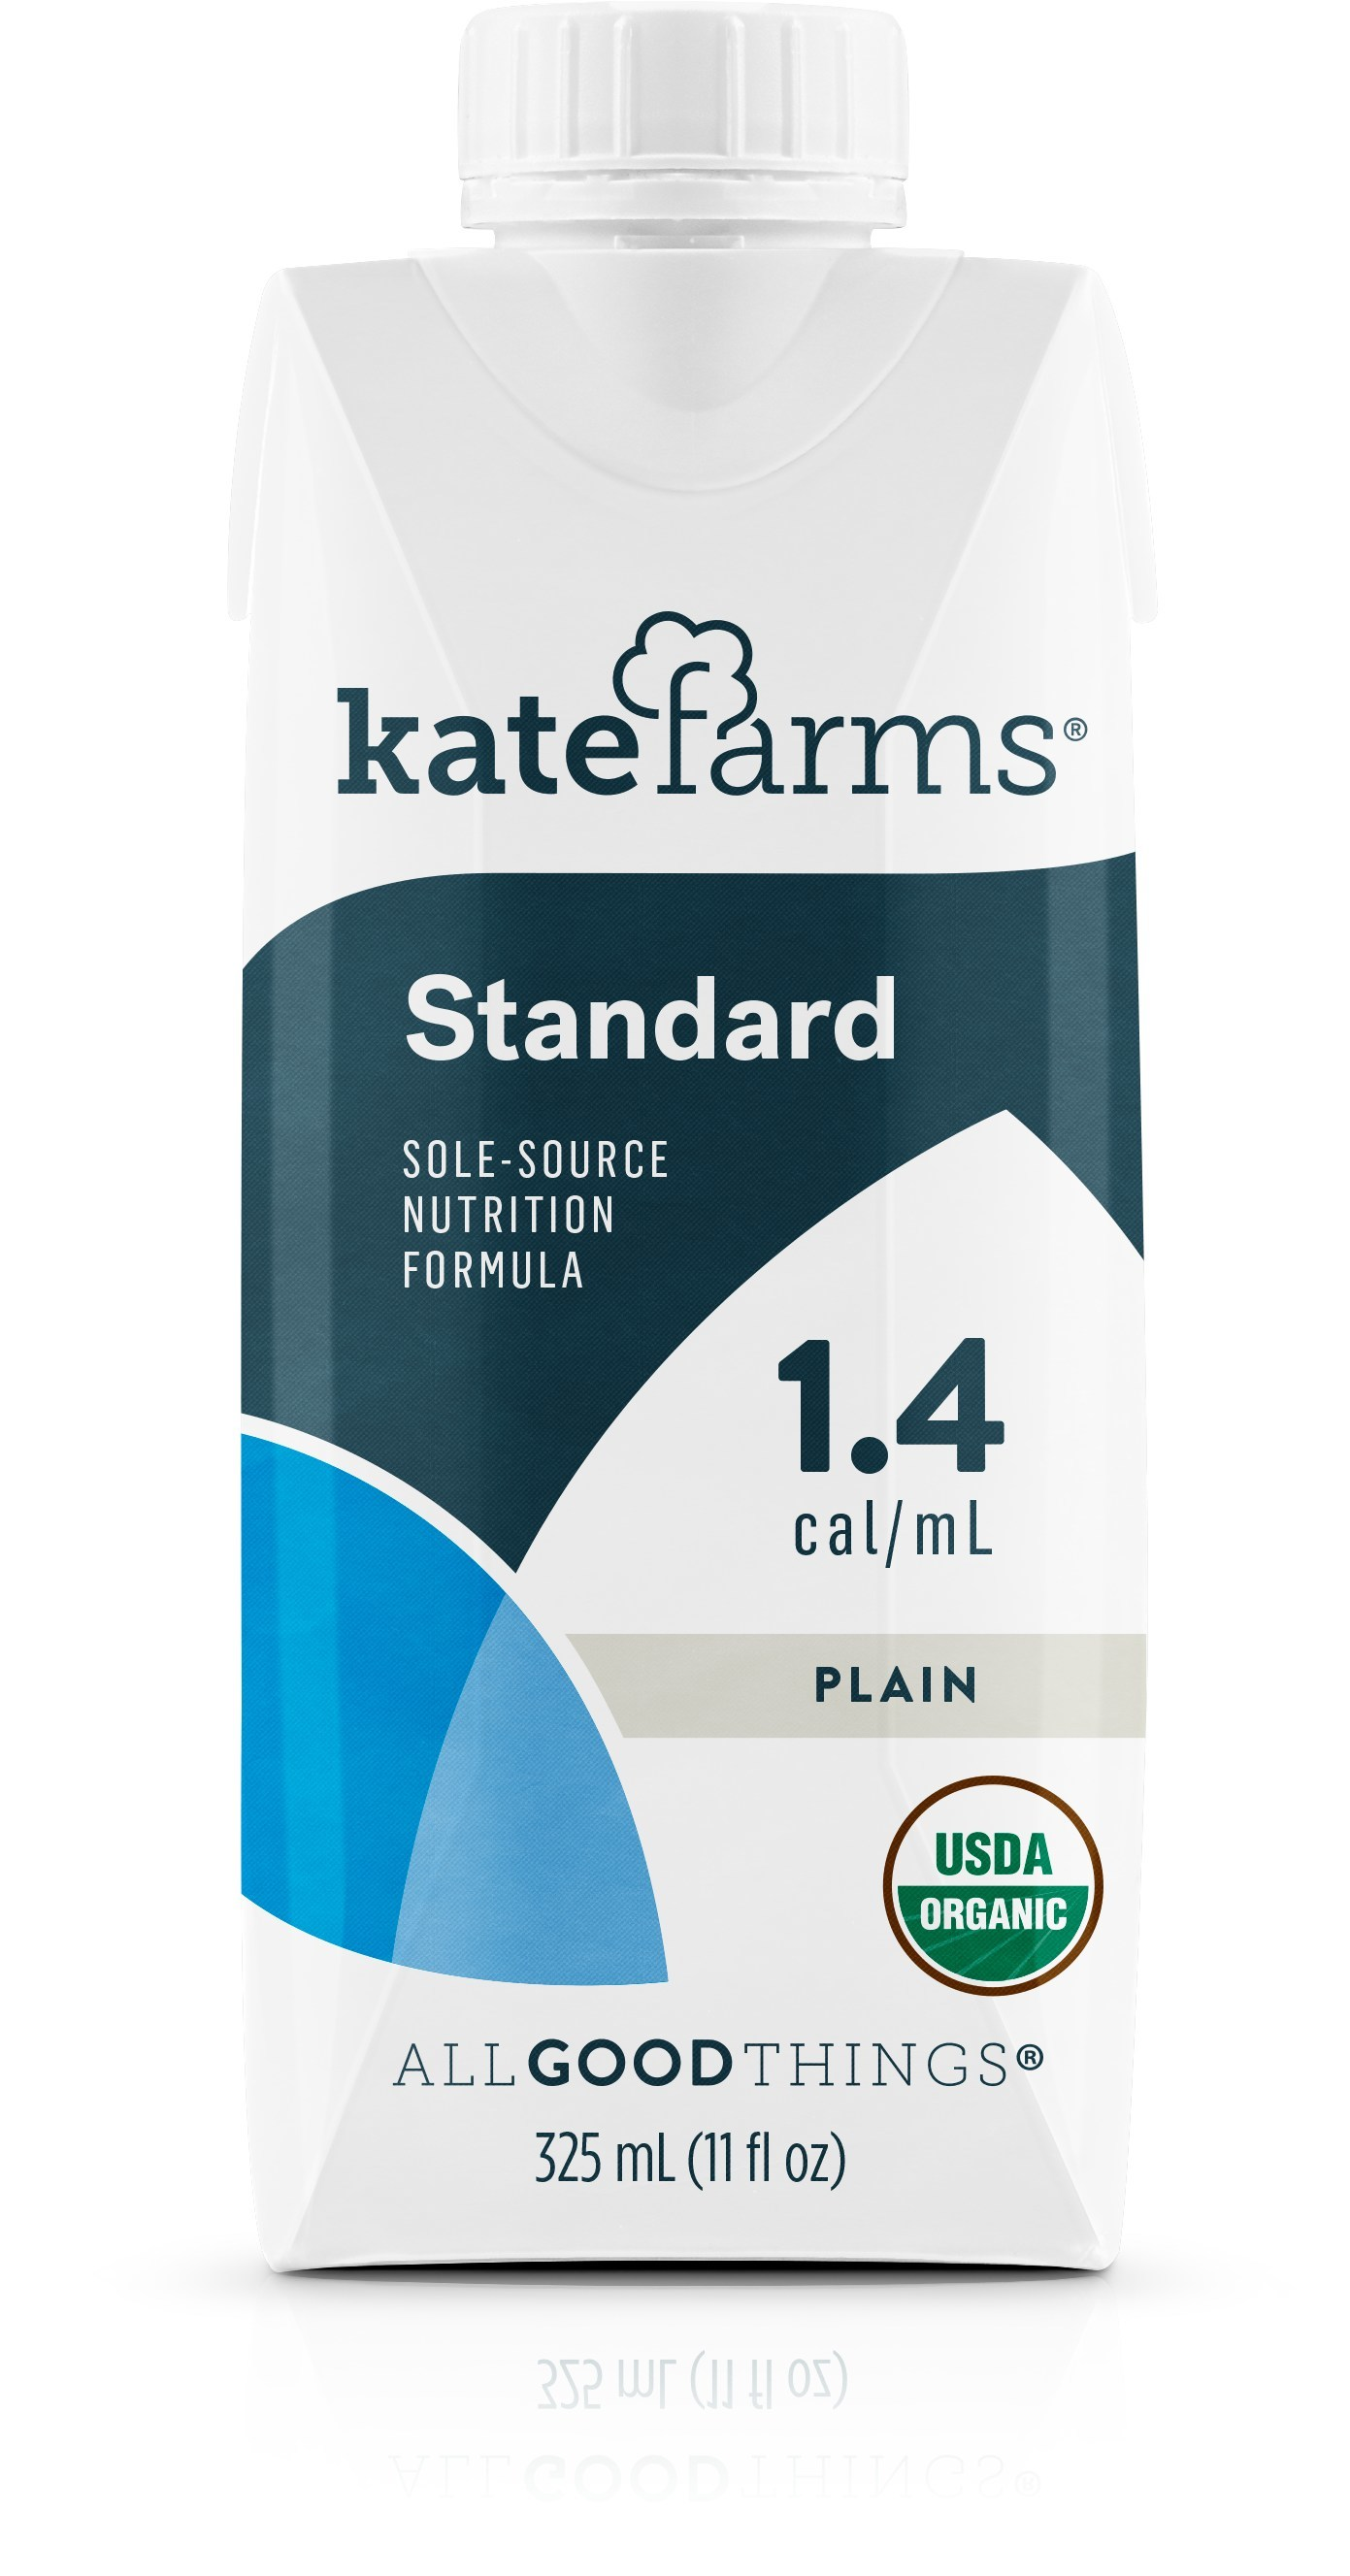 Kate Farms Introduces Two New Medical Nutrition Formulas Leading The Way For Plant Based Nutrition In Healthcare